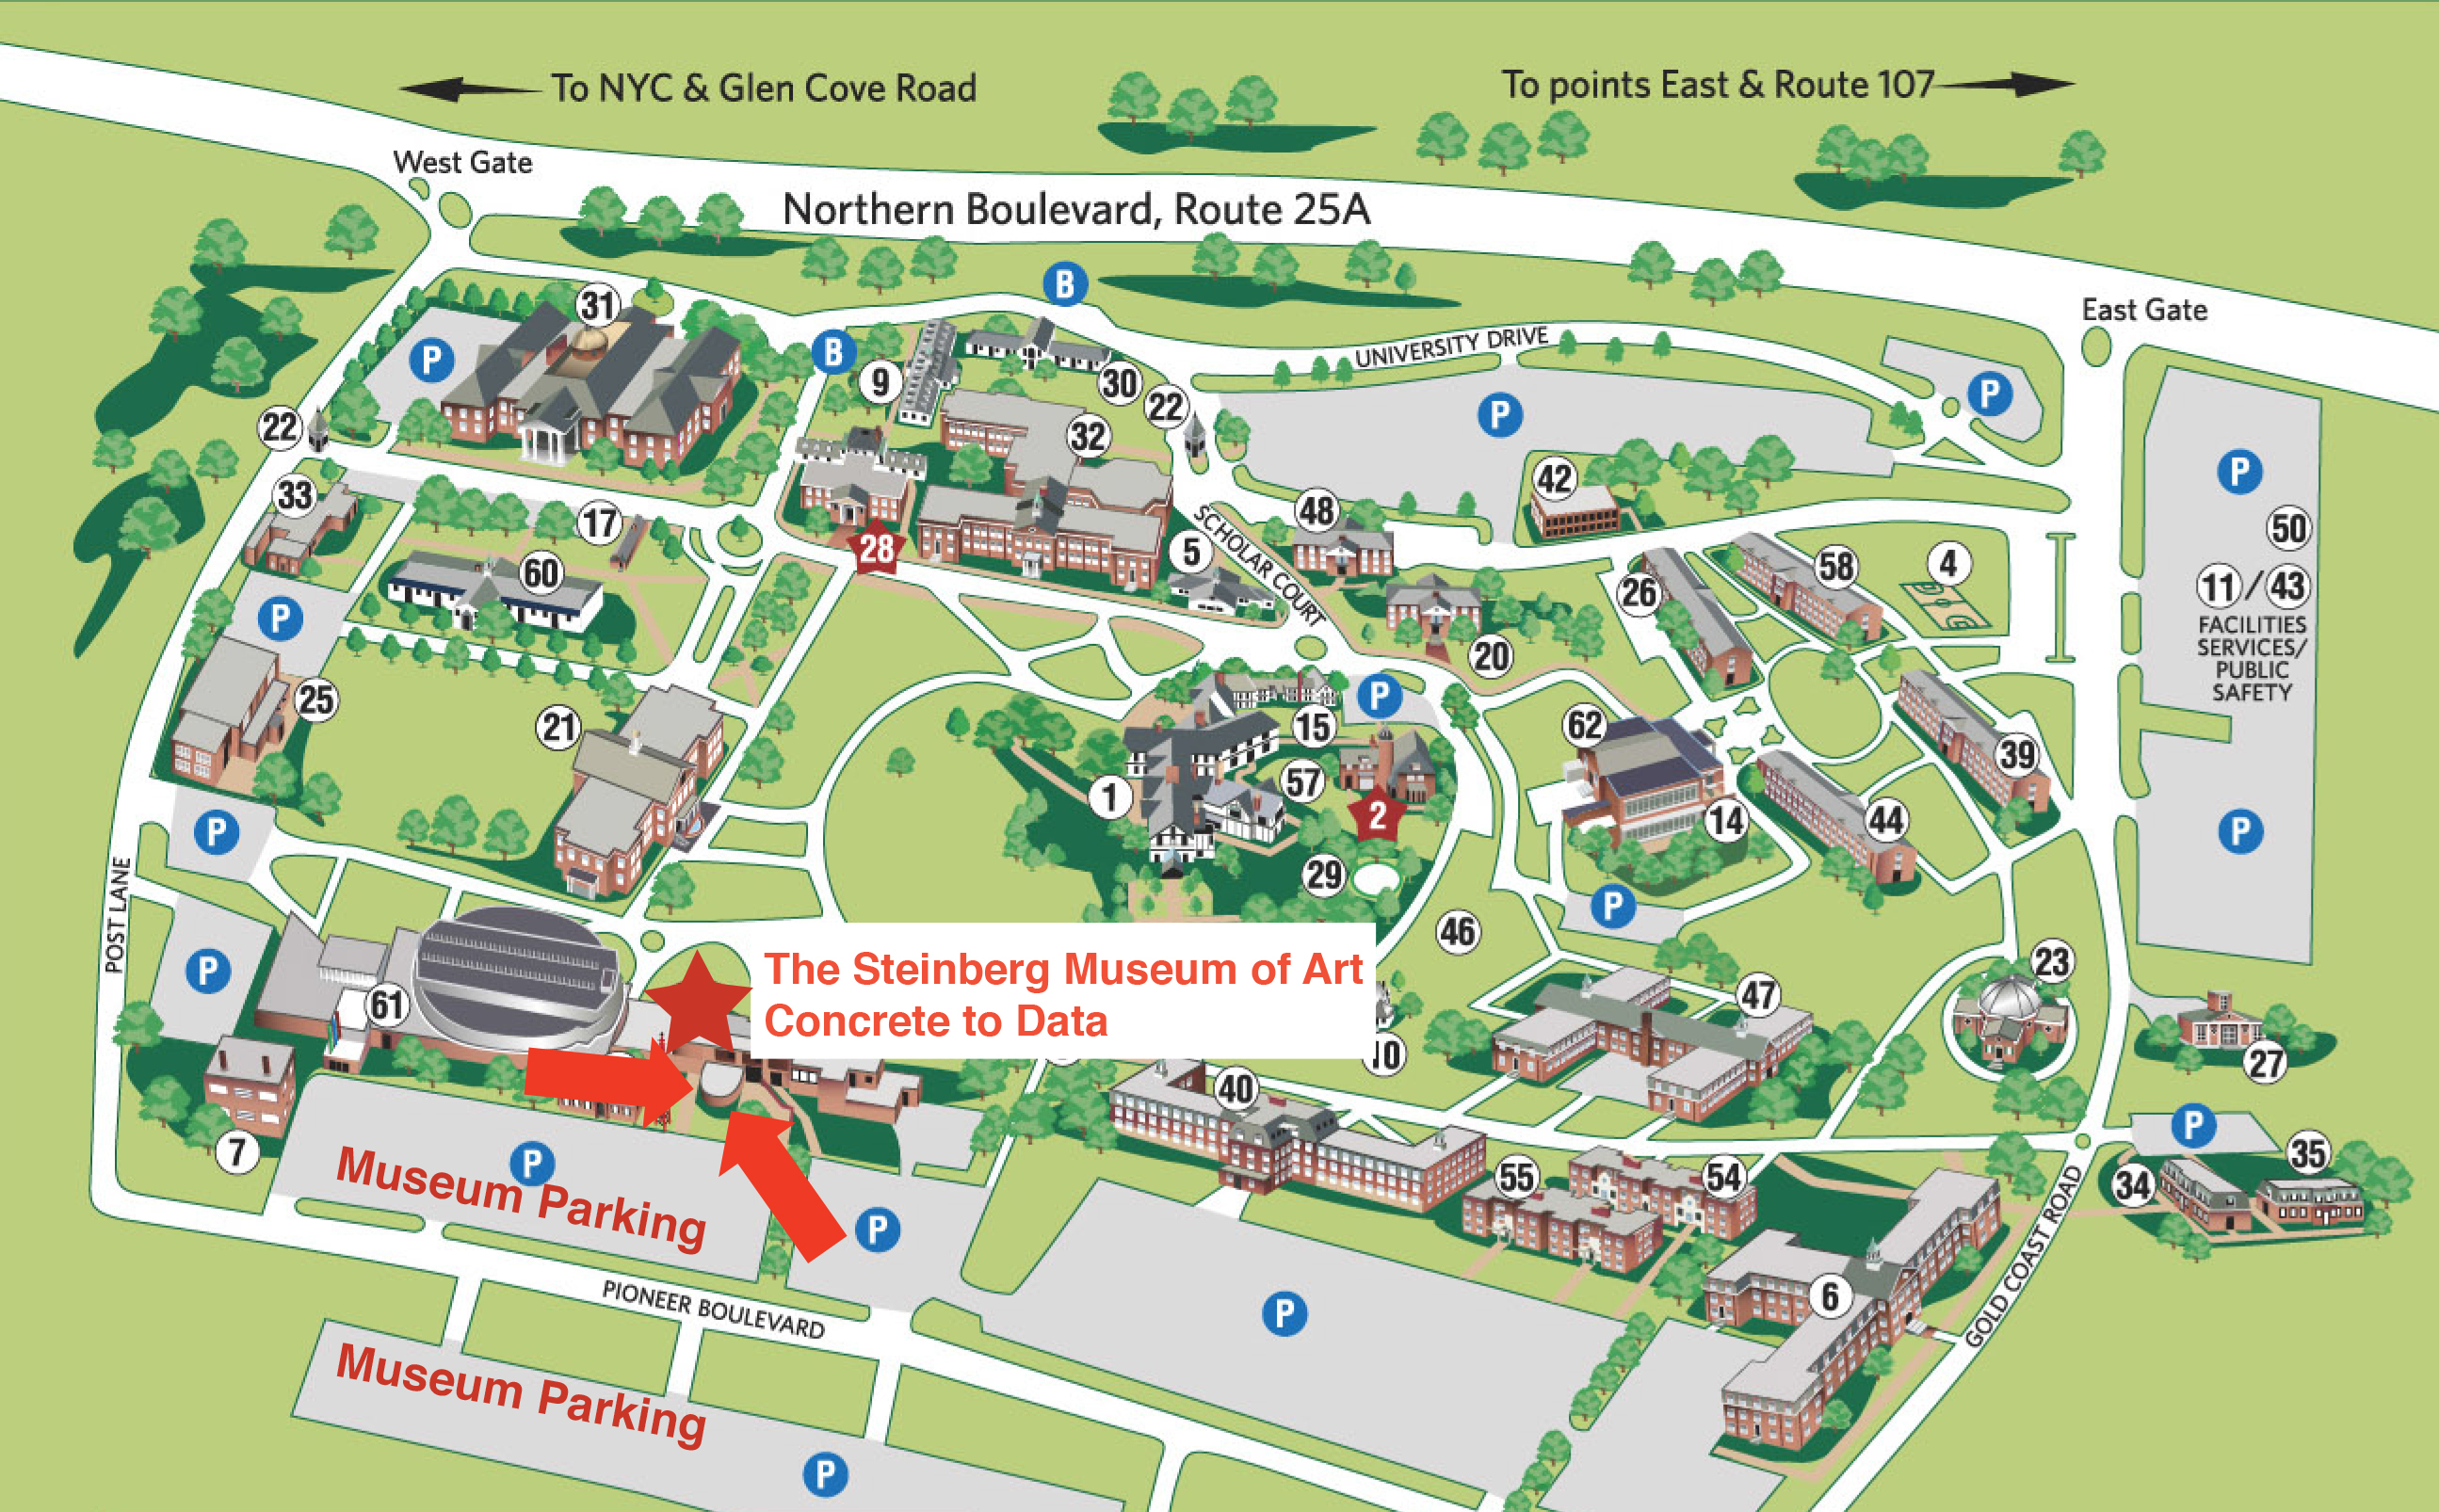 Liu Post Campus Map LIU Post campus map | Concrete to Data